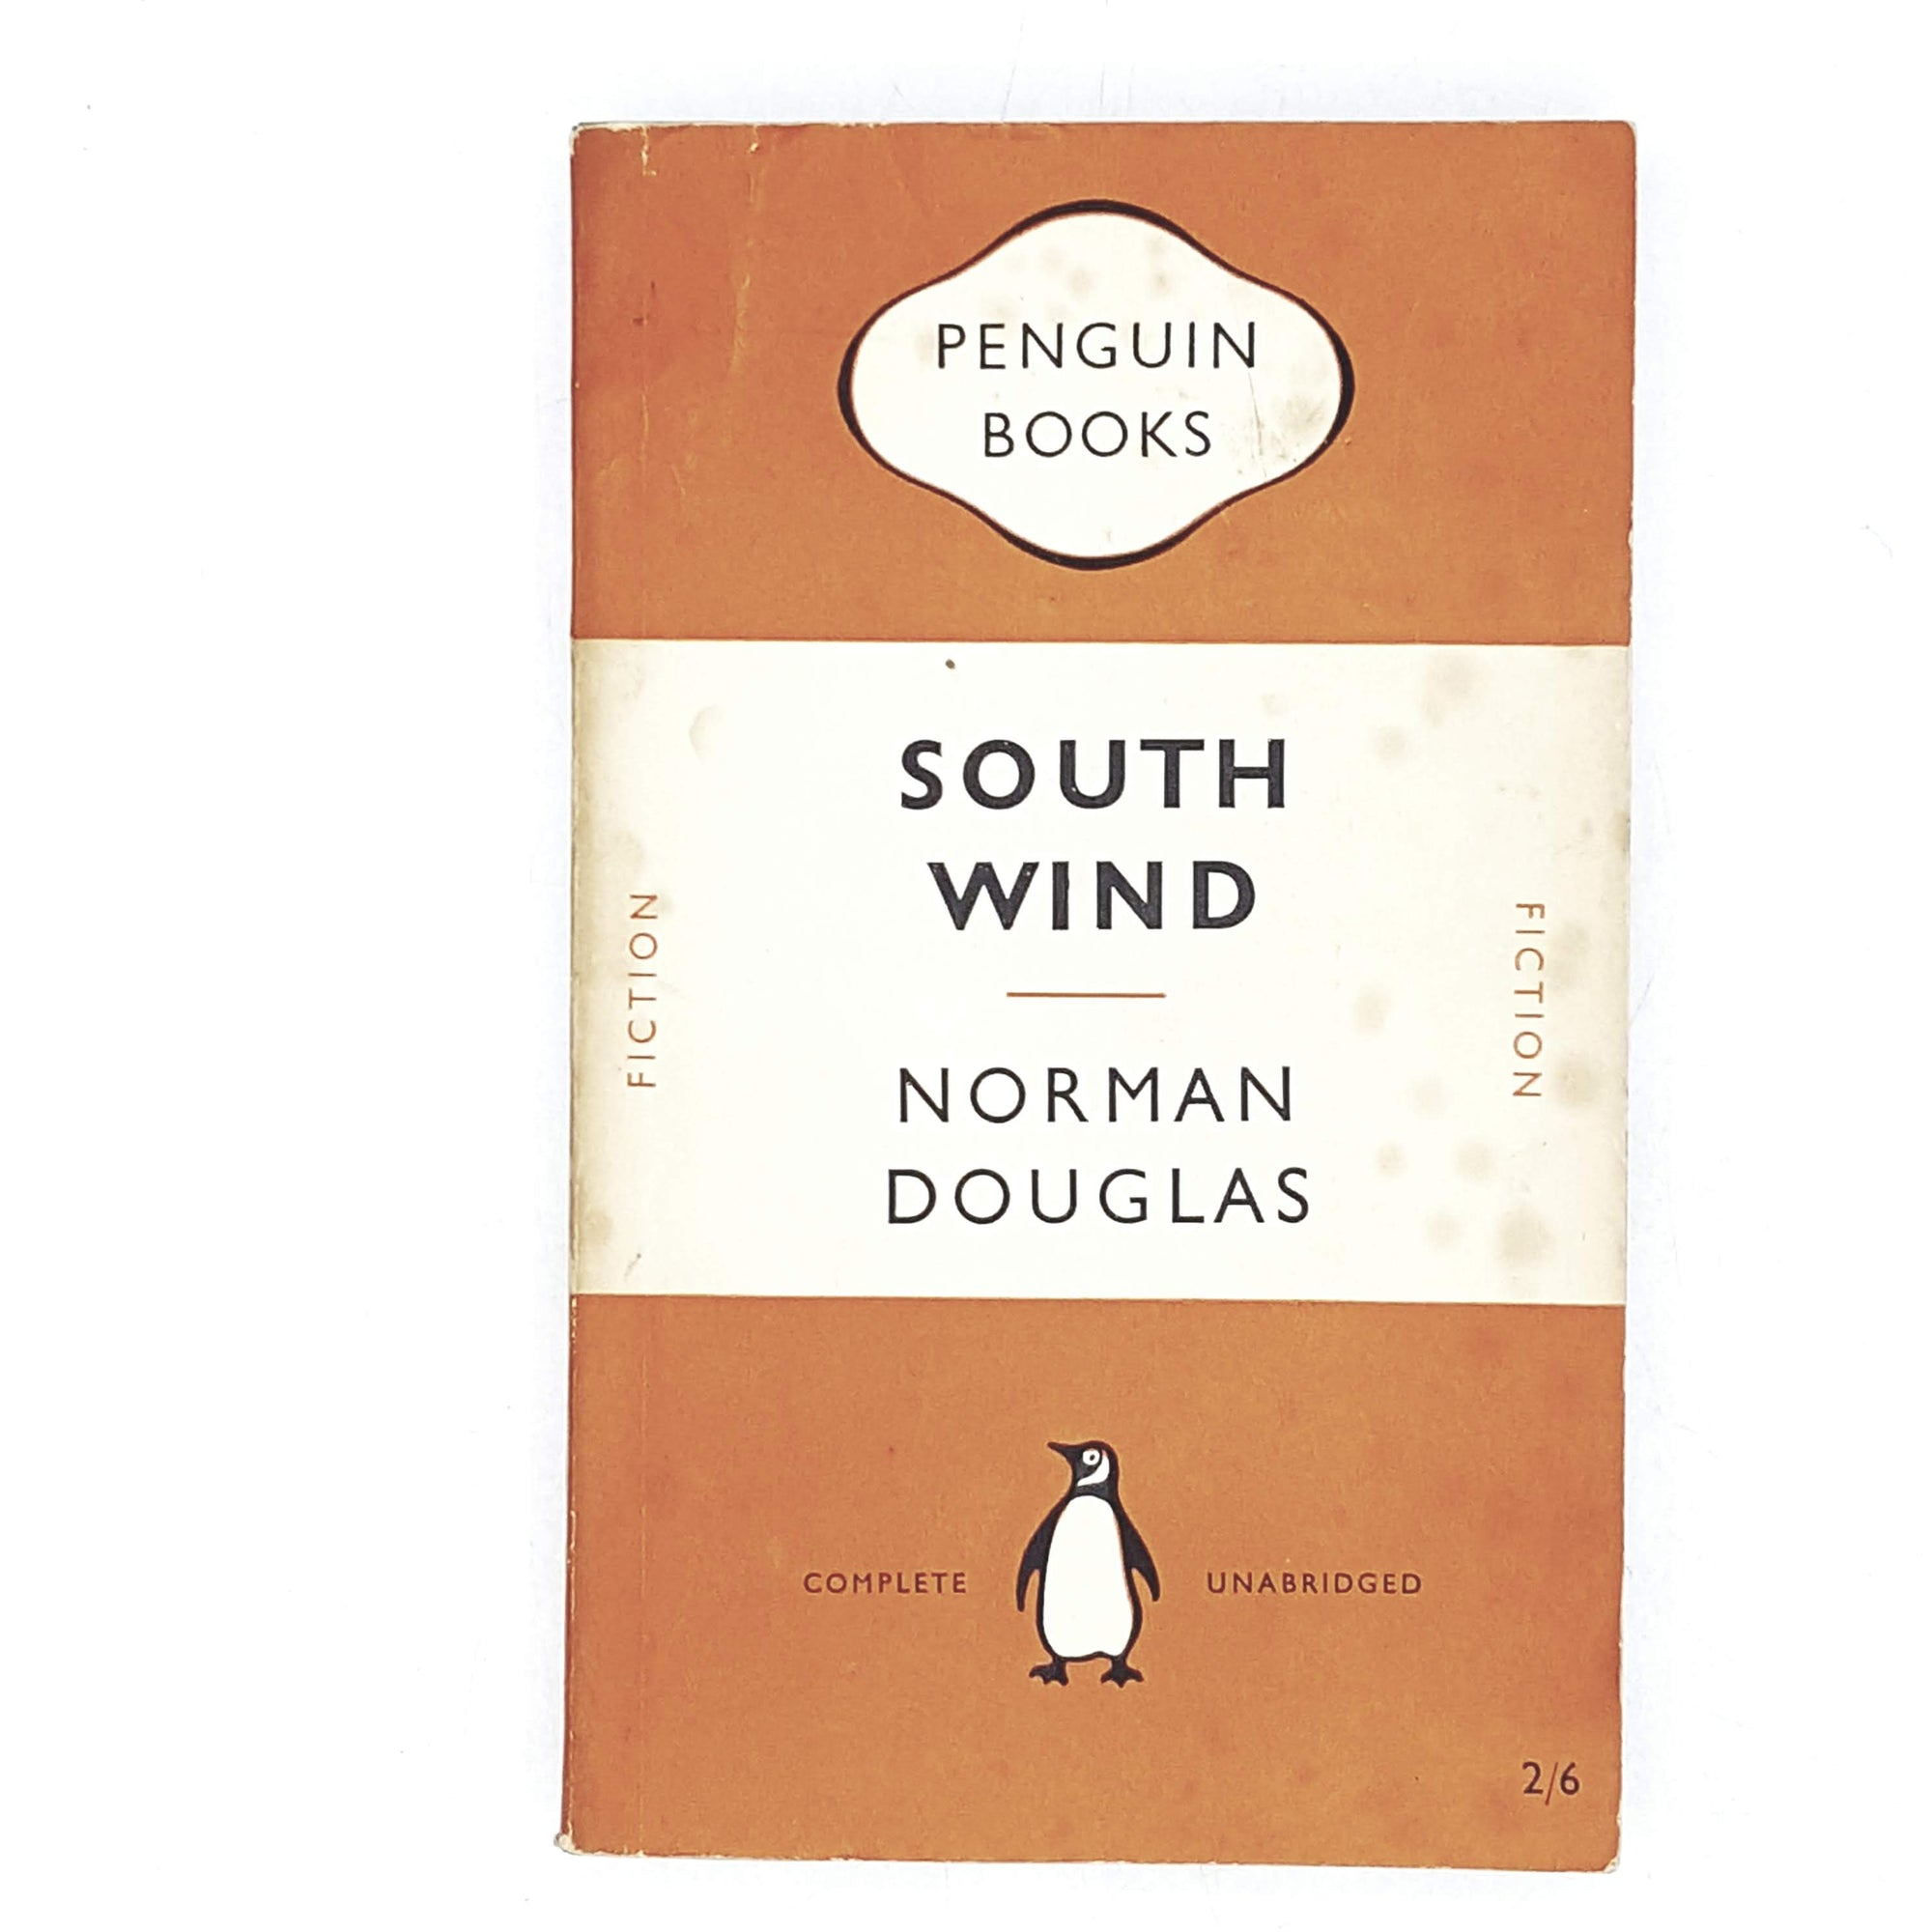 Vintage Penguin South Wind by Norman Douglas 1953